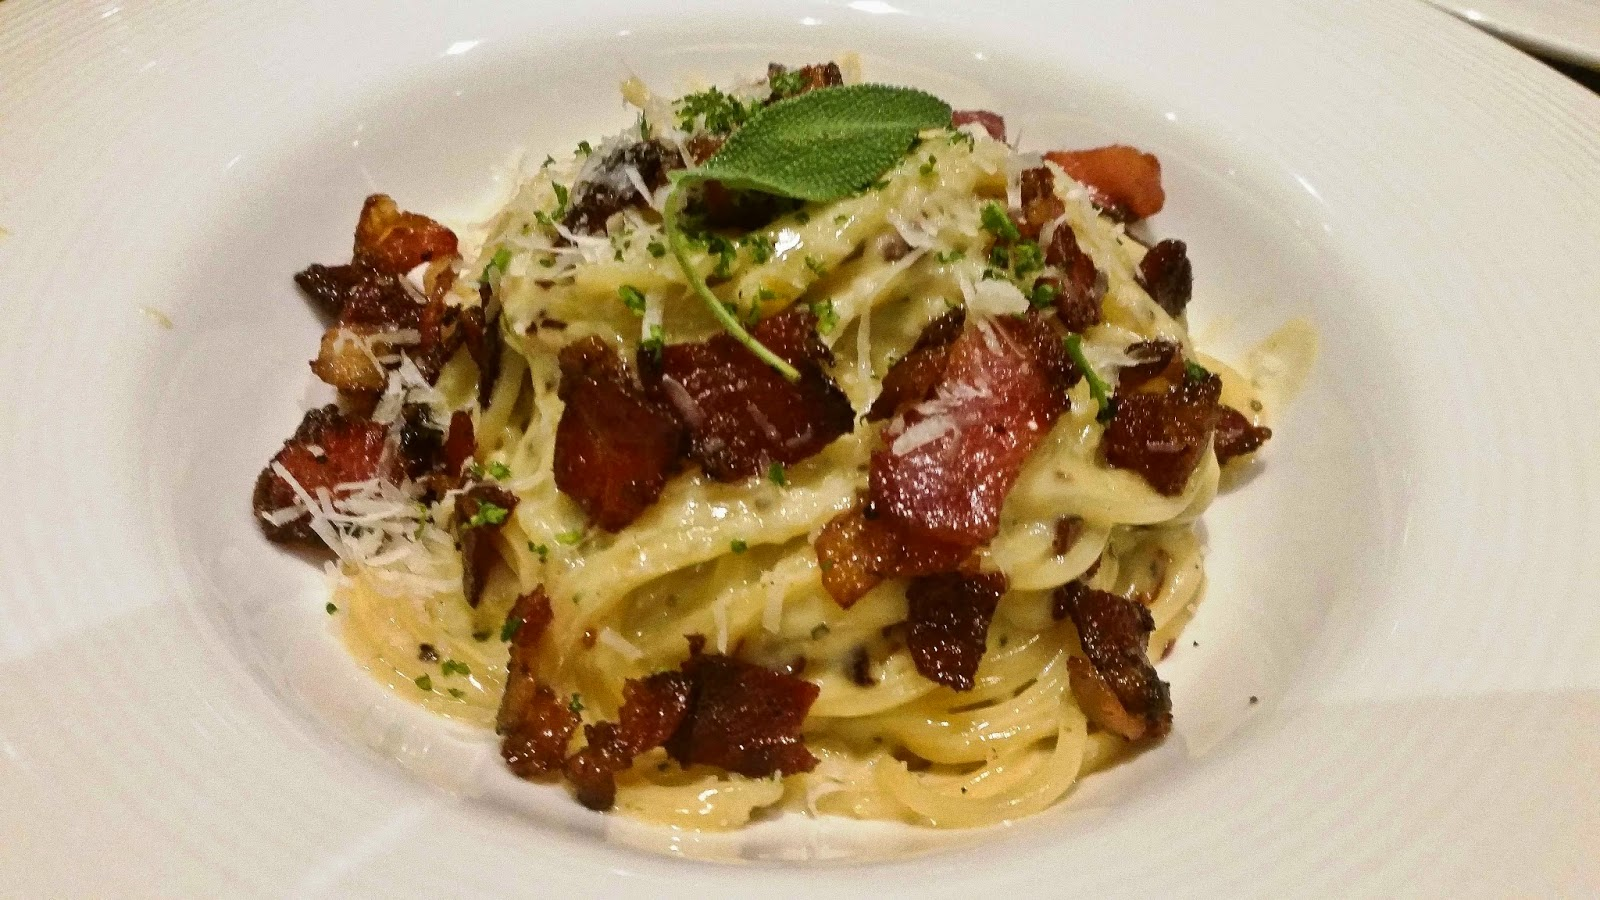 Spaghetti Carbonara with bacon